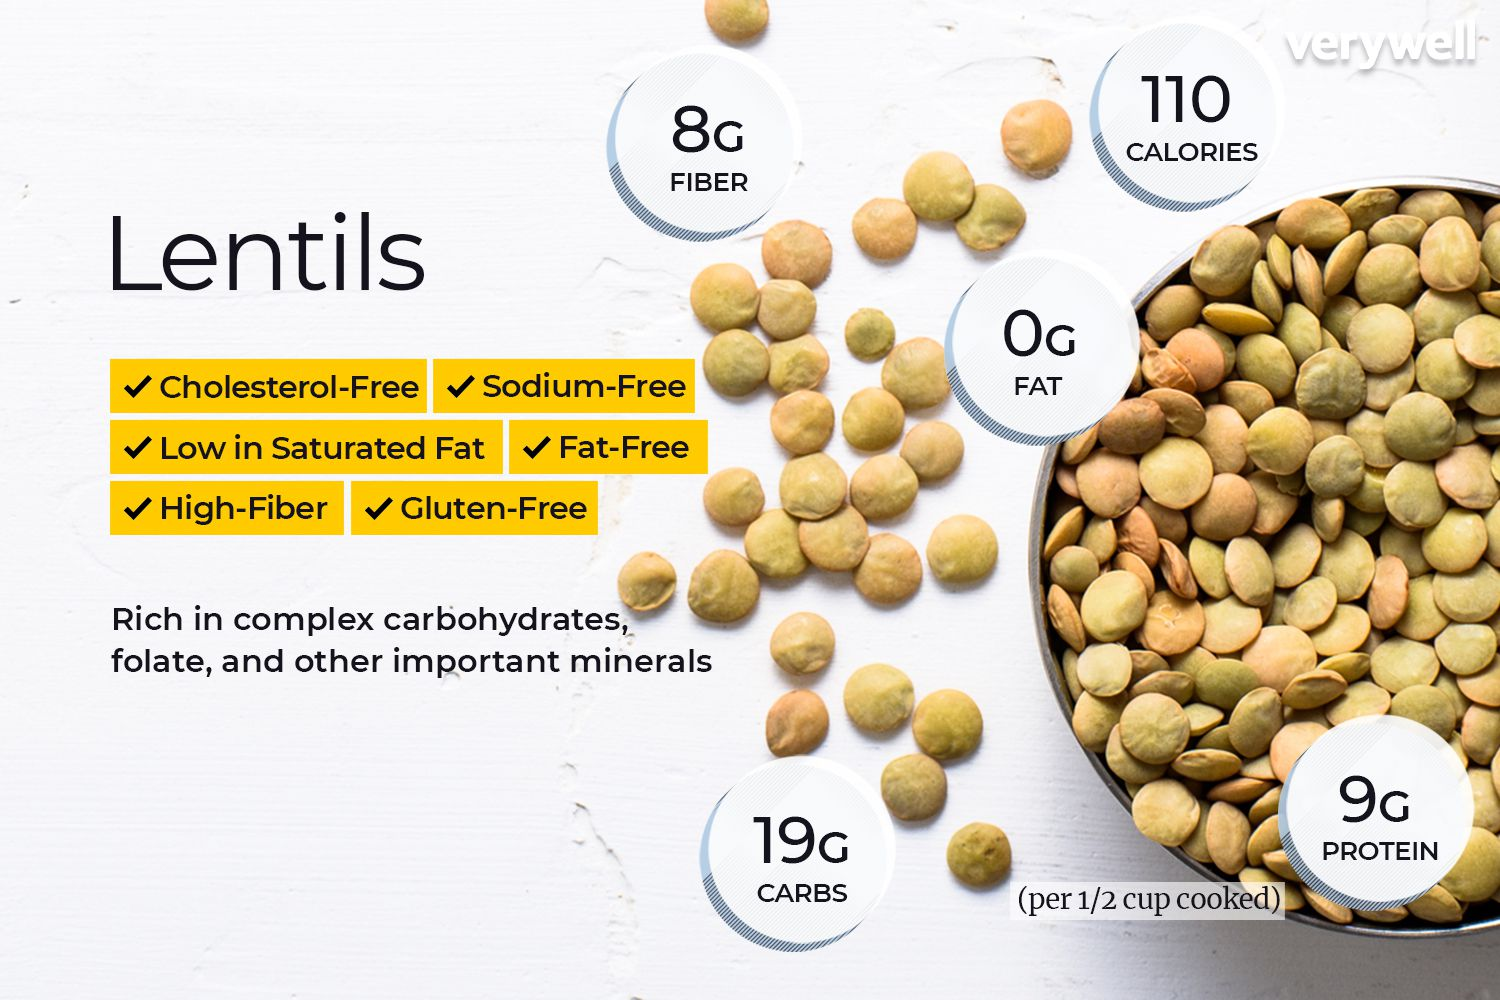 Lentils Nutrition: Calories, Carbs, and Health Benefits